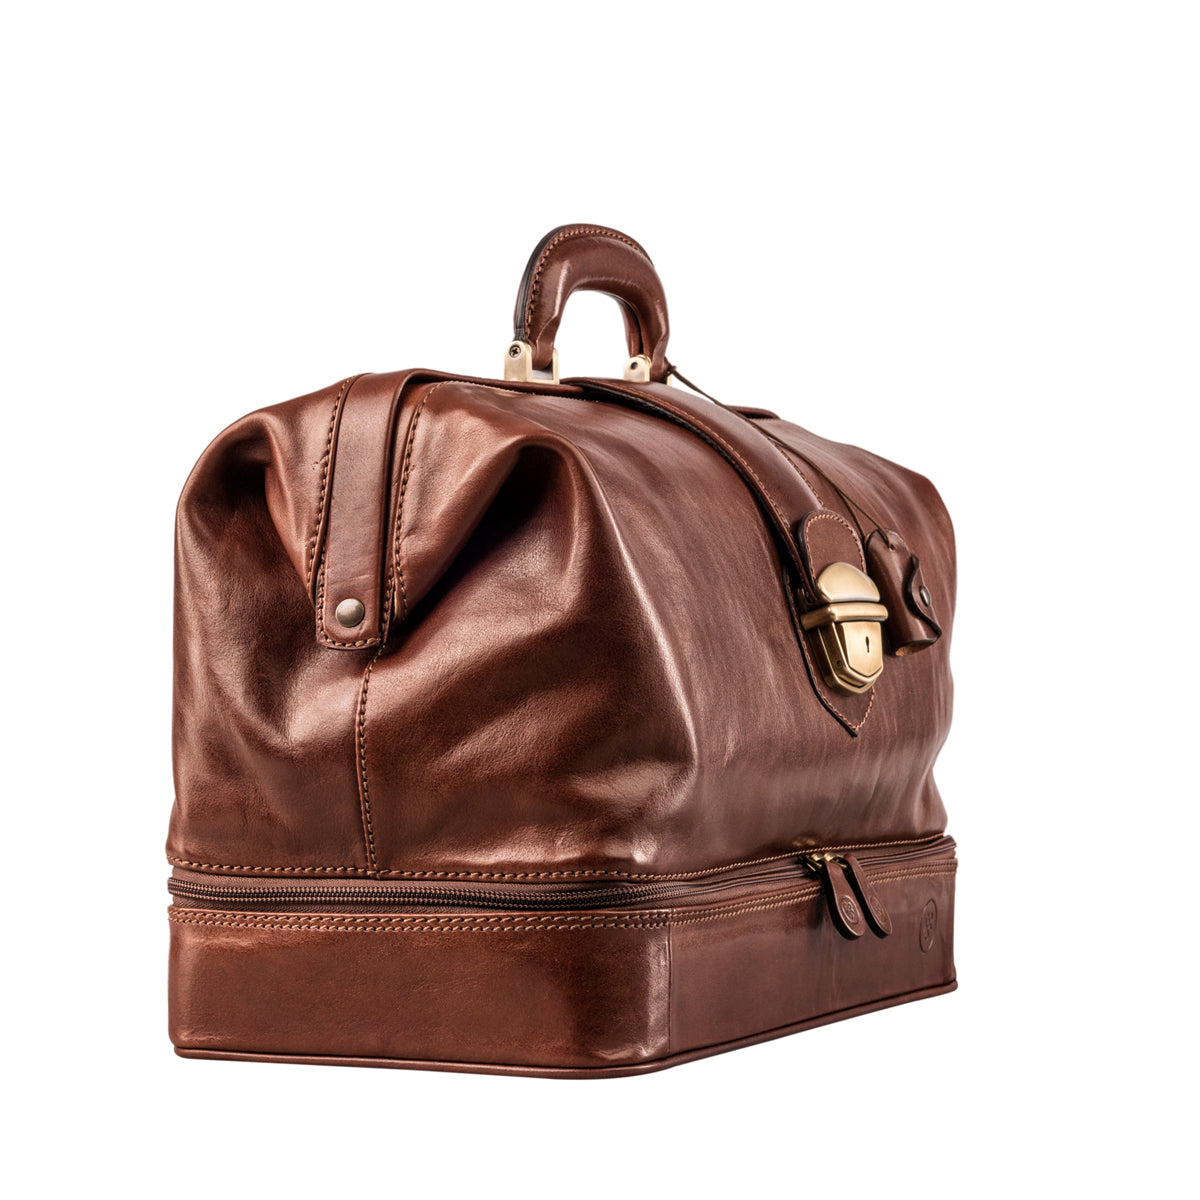 Image 2 of the Large ''Donnini' Chestnut Veg-Tanned Leather Doctor's Bag